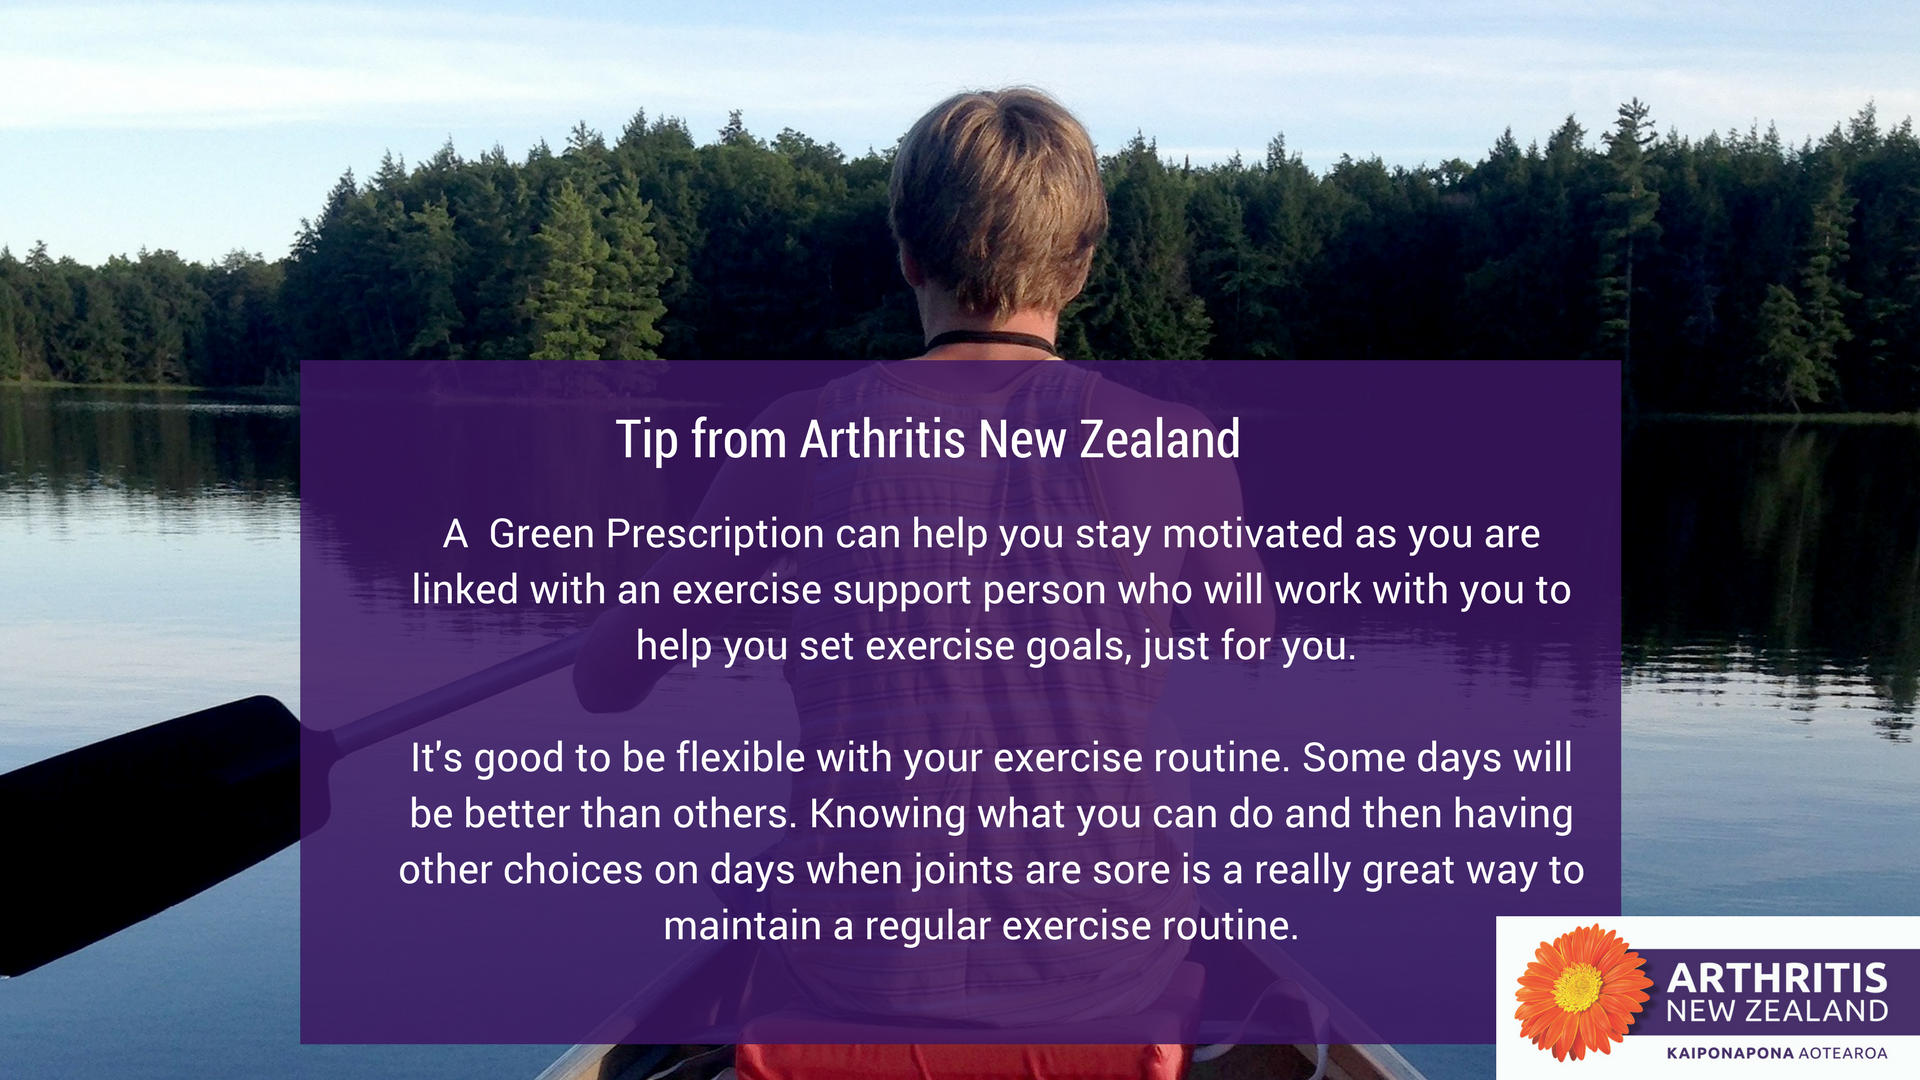 3 - Exercise tips from the Arthritis New Zealand community